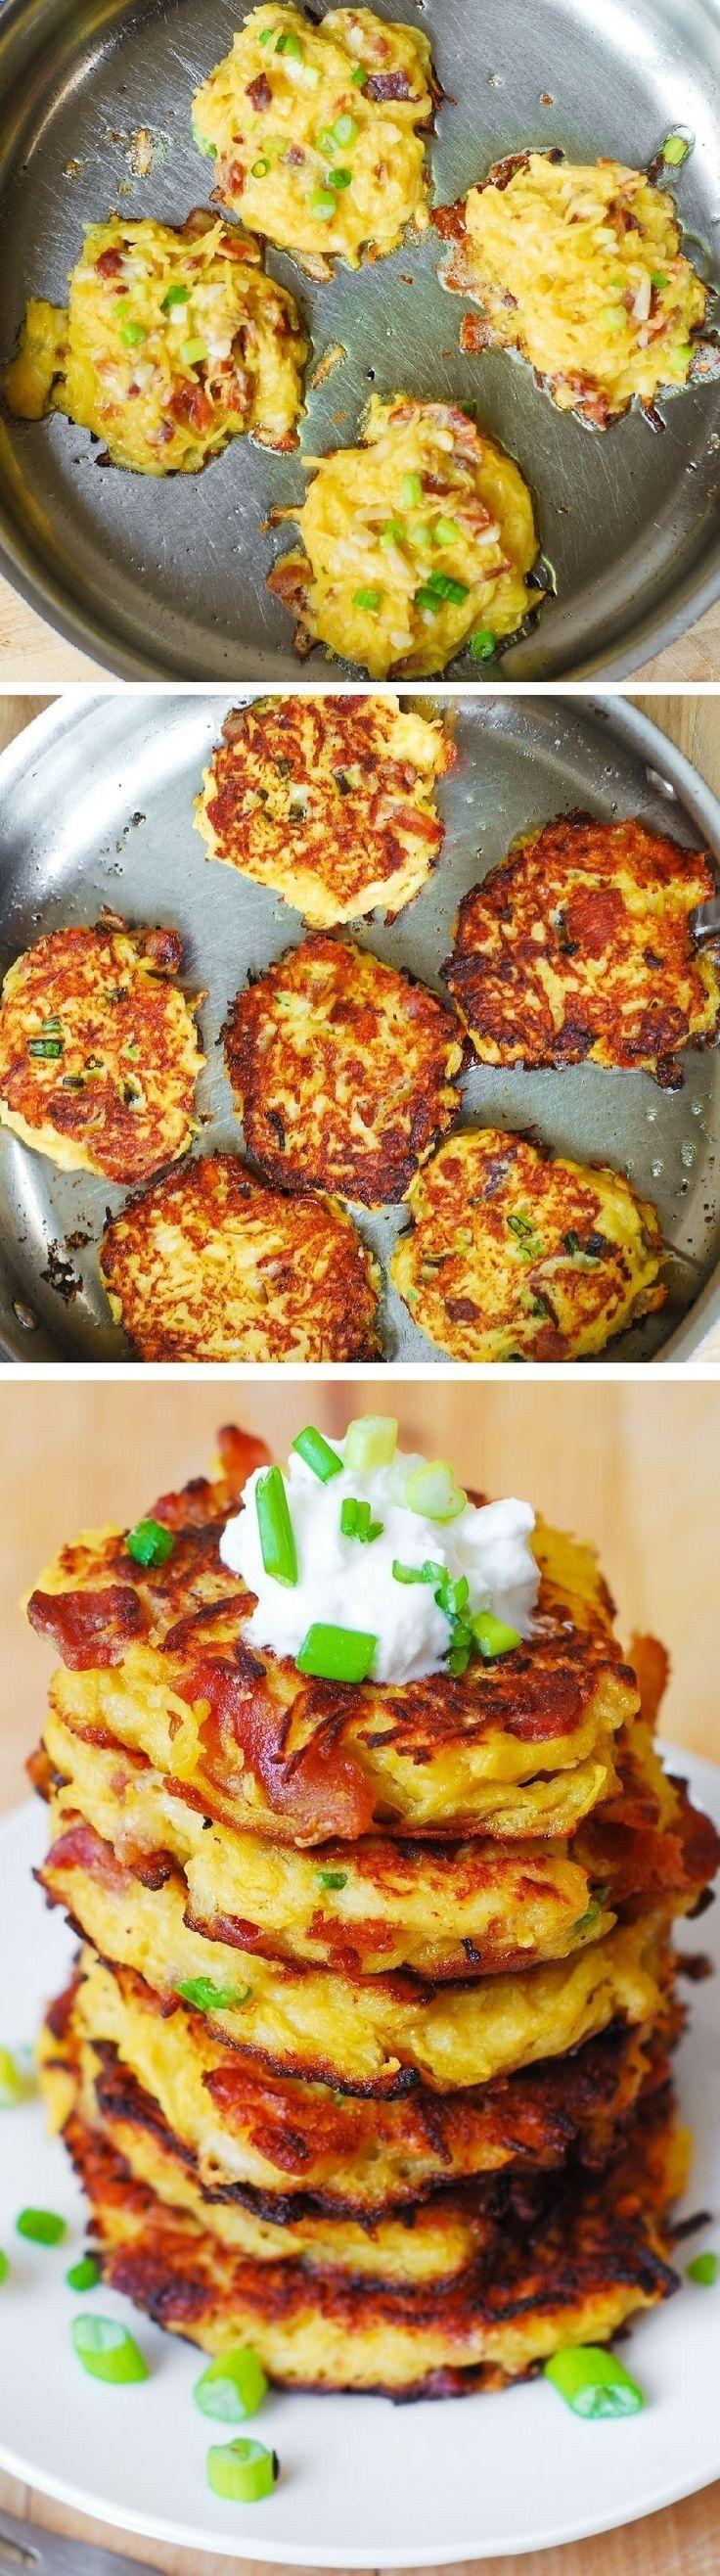 Bacon,  spaghetti squash and parmesan fritters